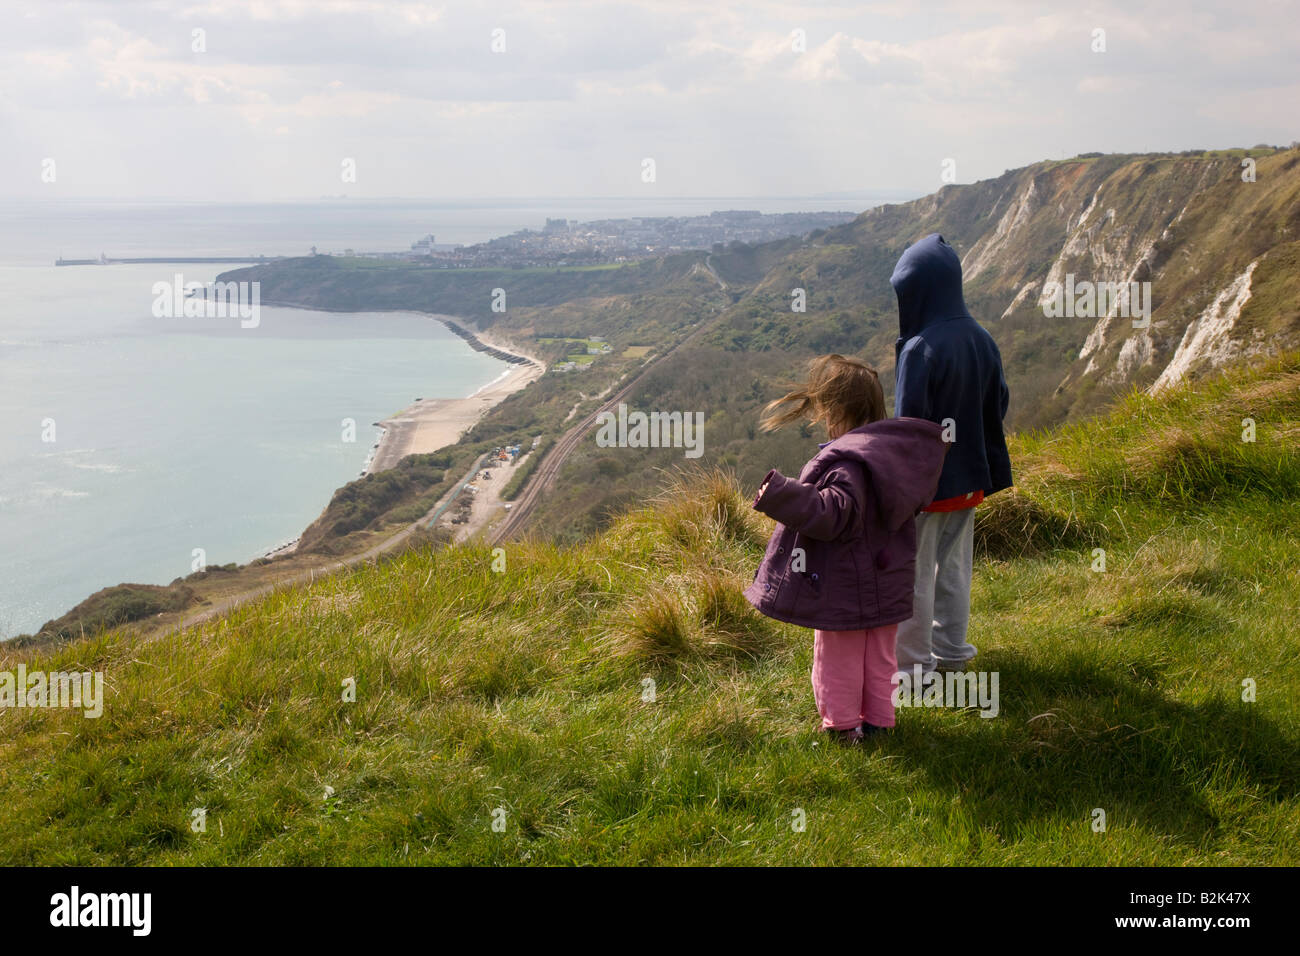 Family enjoying the view of Folkestone from the clifftops at Capel Le Ferne in Kent - Stock Image